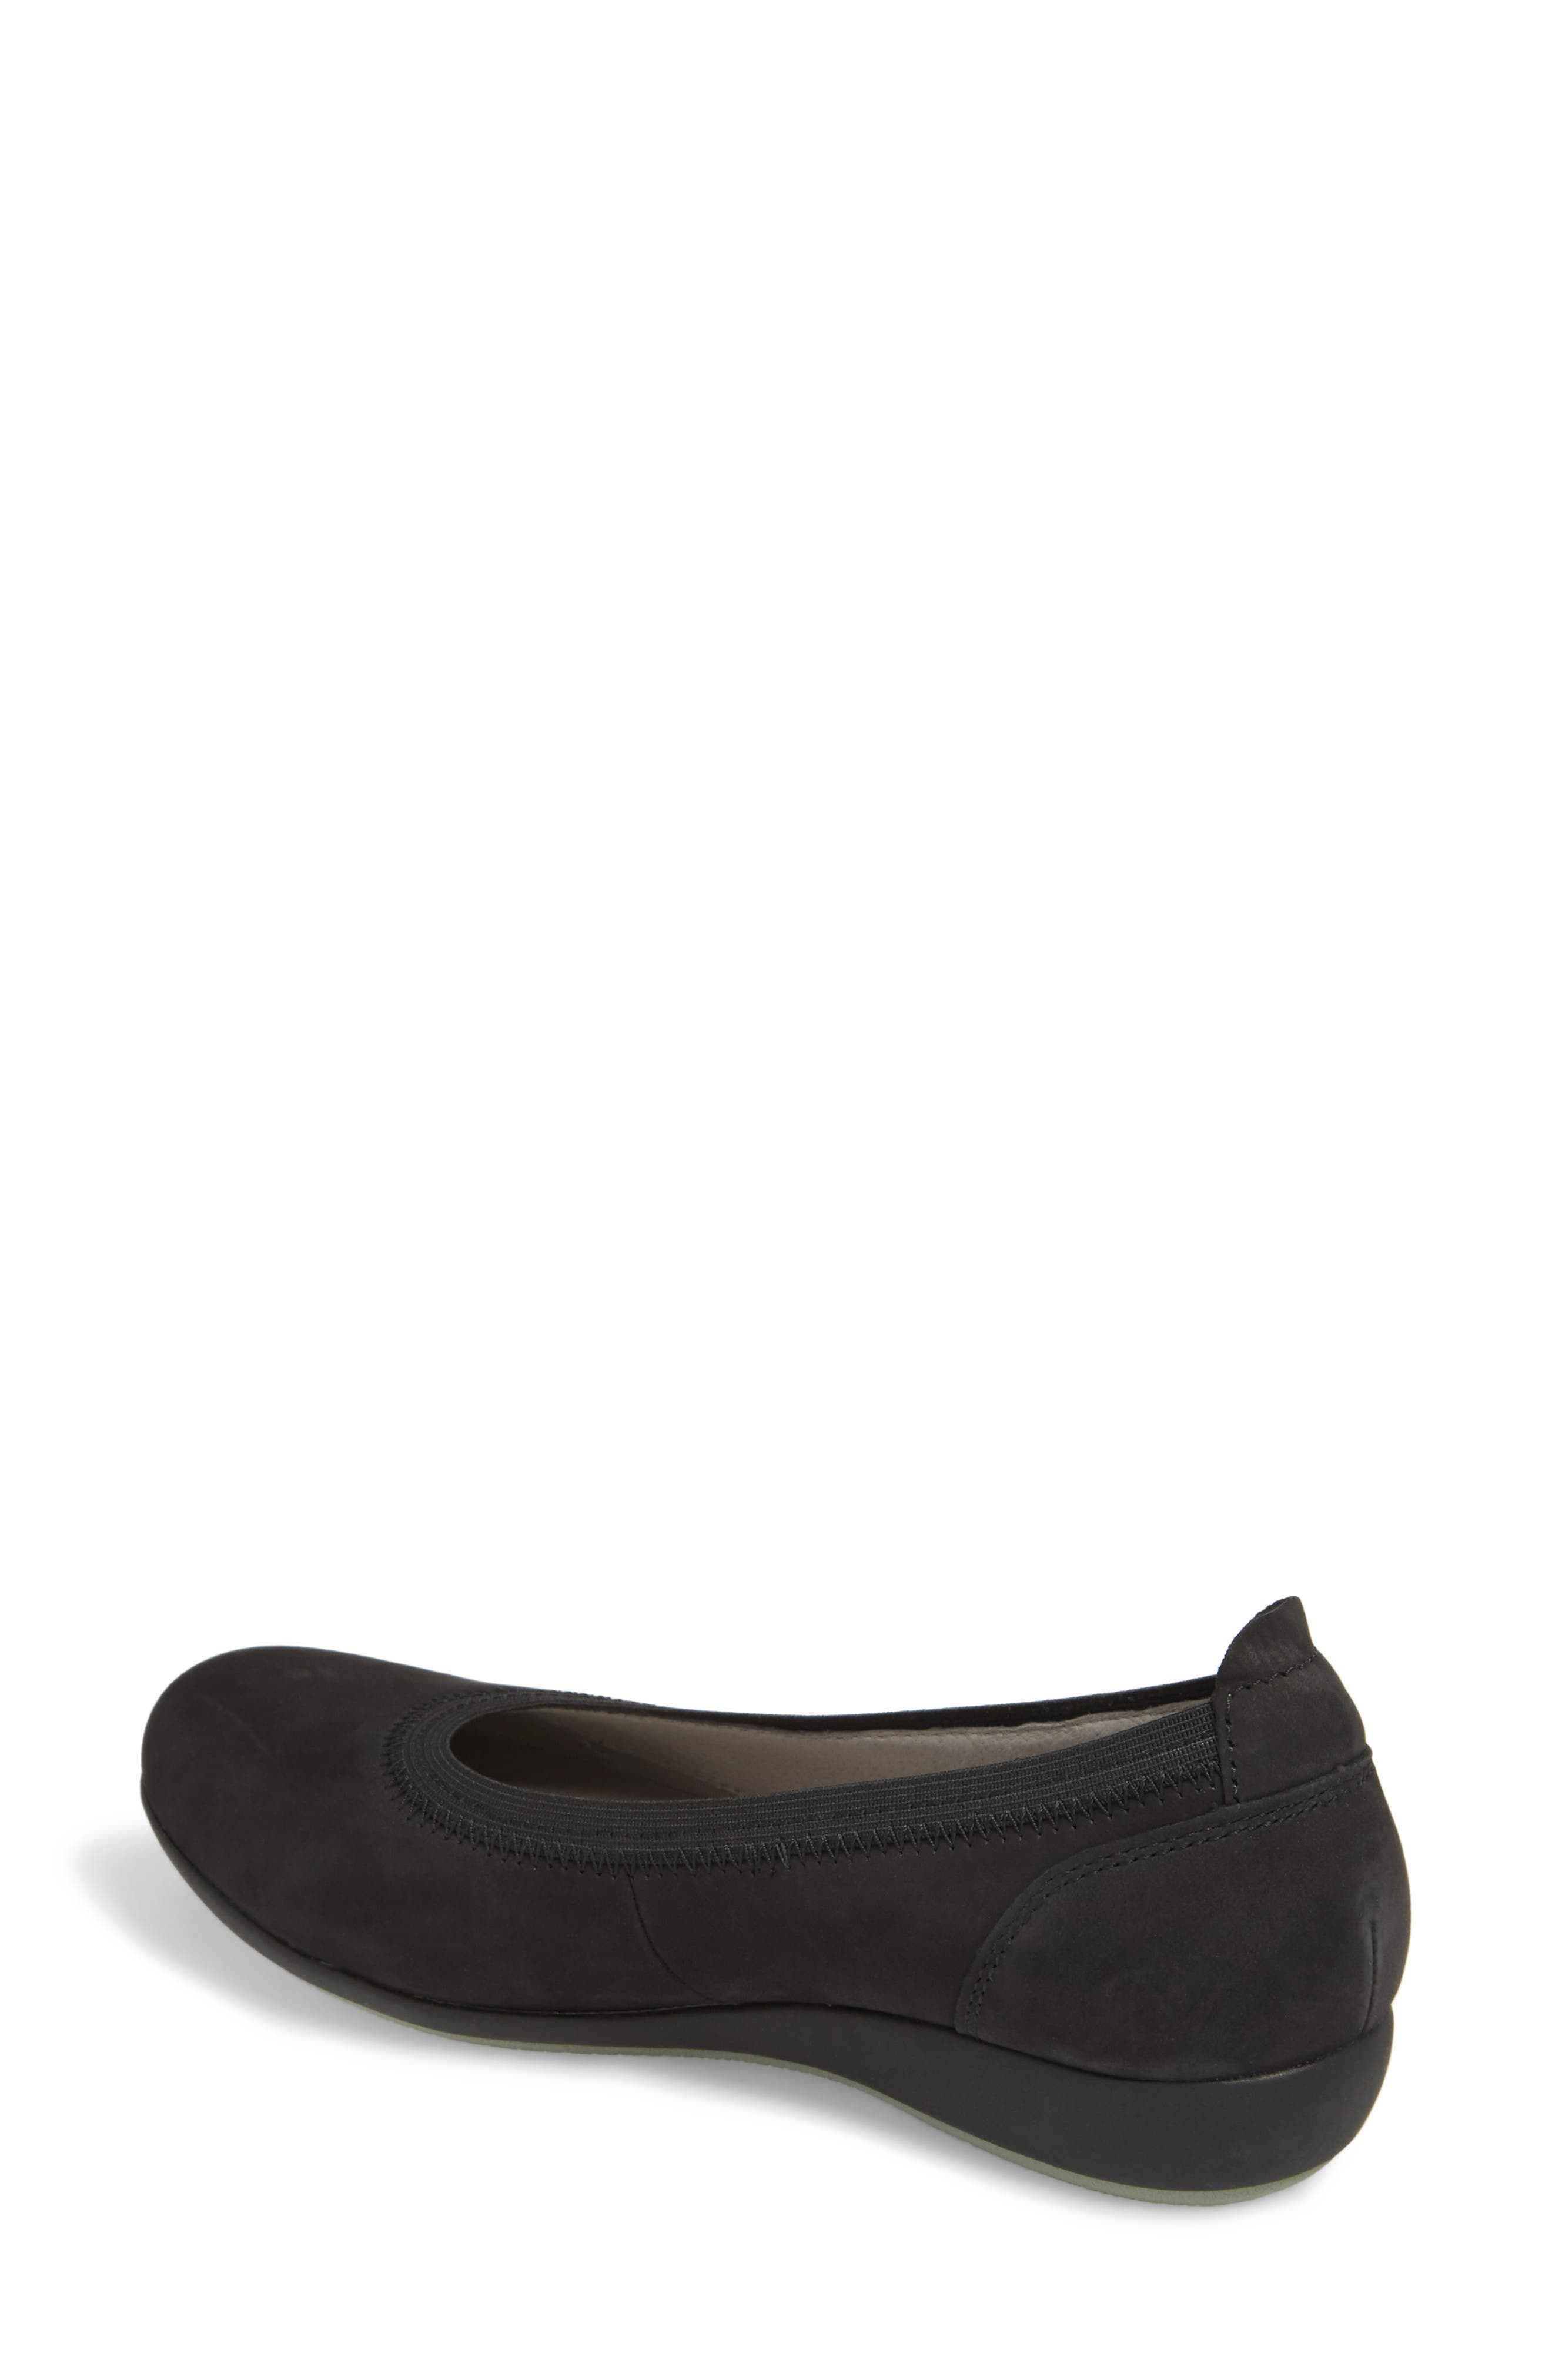 DANSKO, Kristen Ballet Flat, Alternate thumbnail 2, color, BLACK MILLED NUBUCK